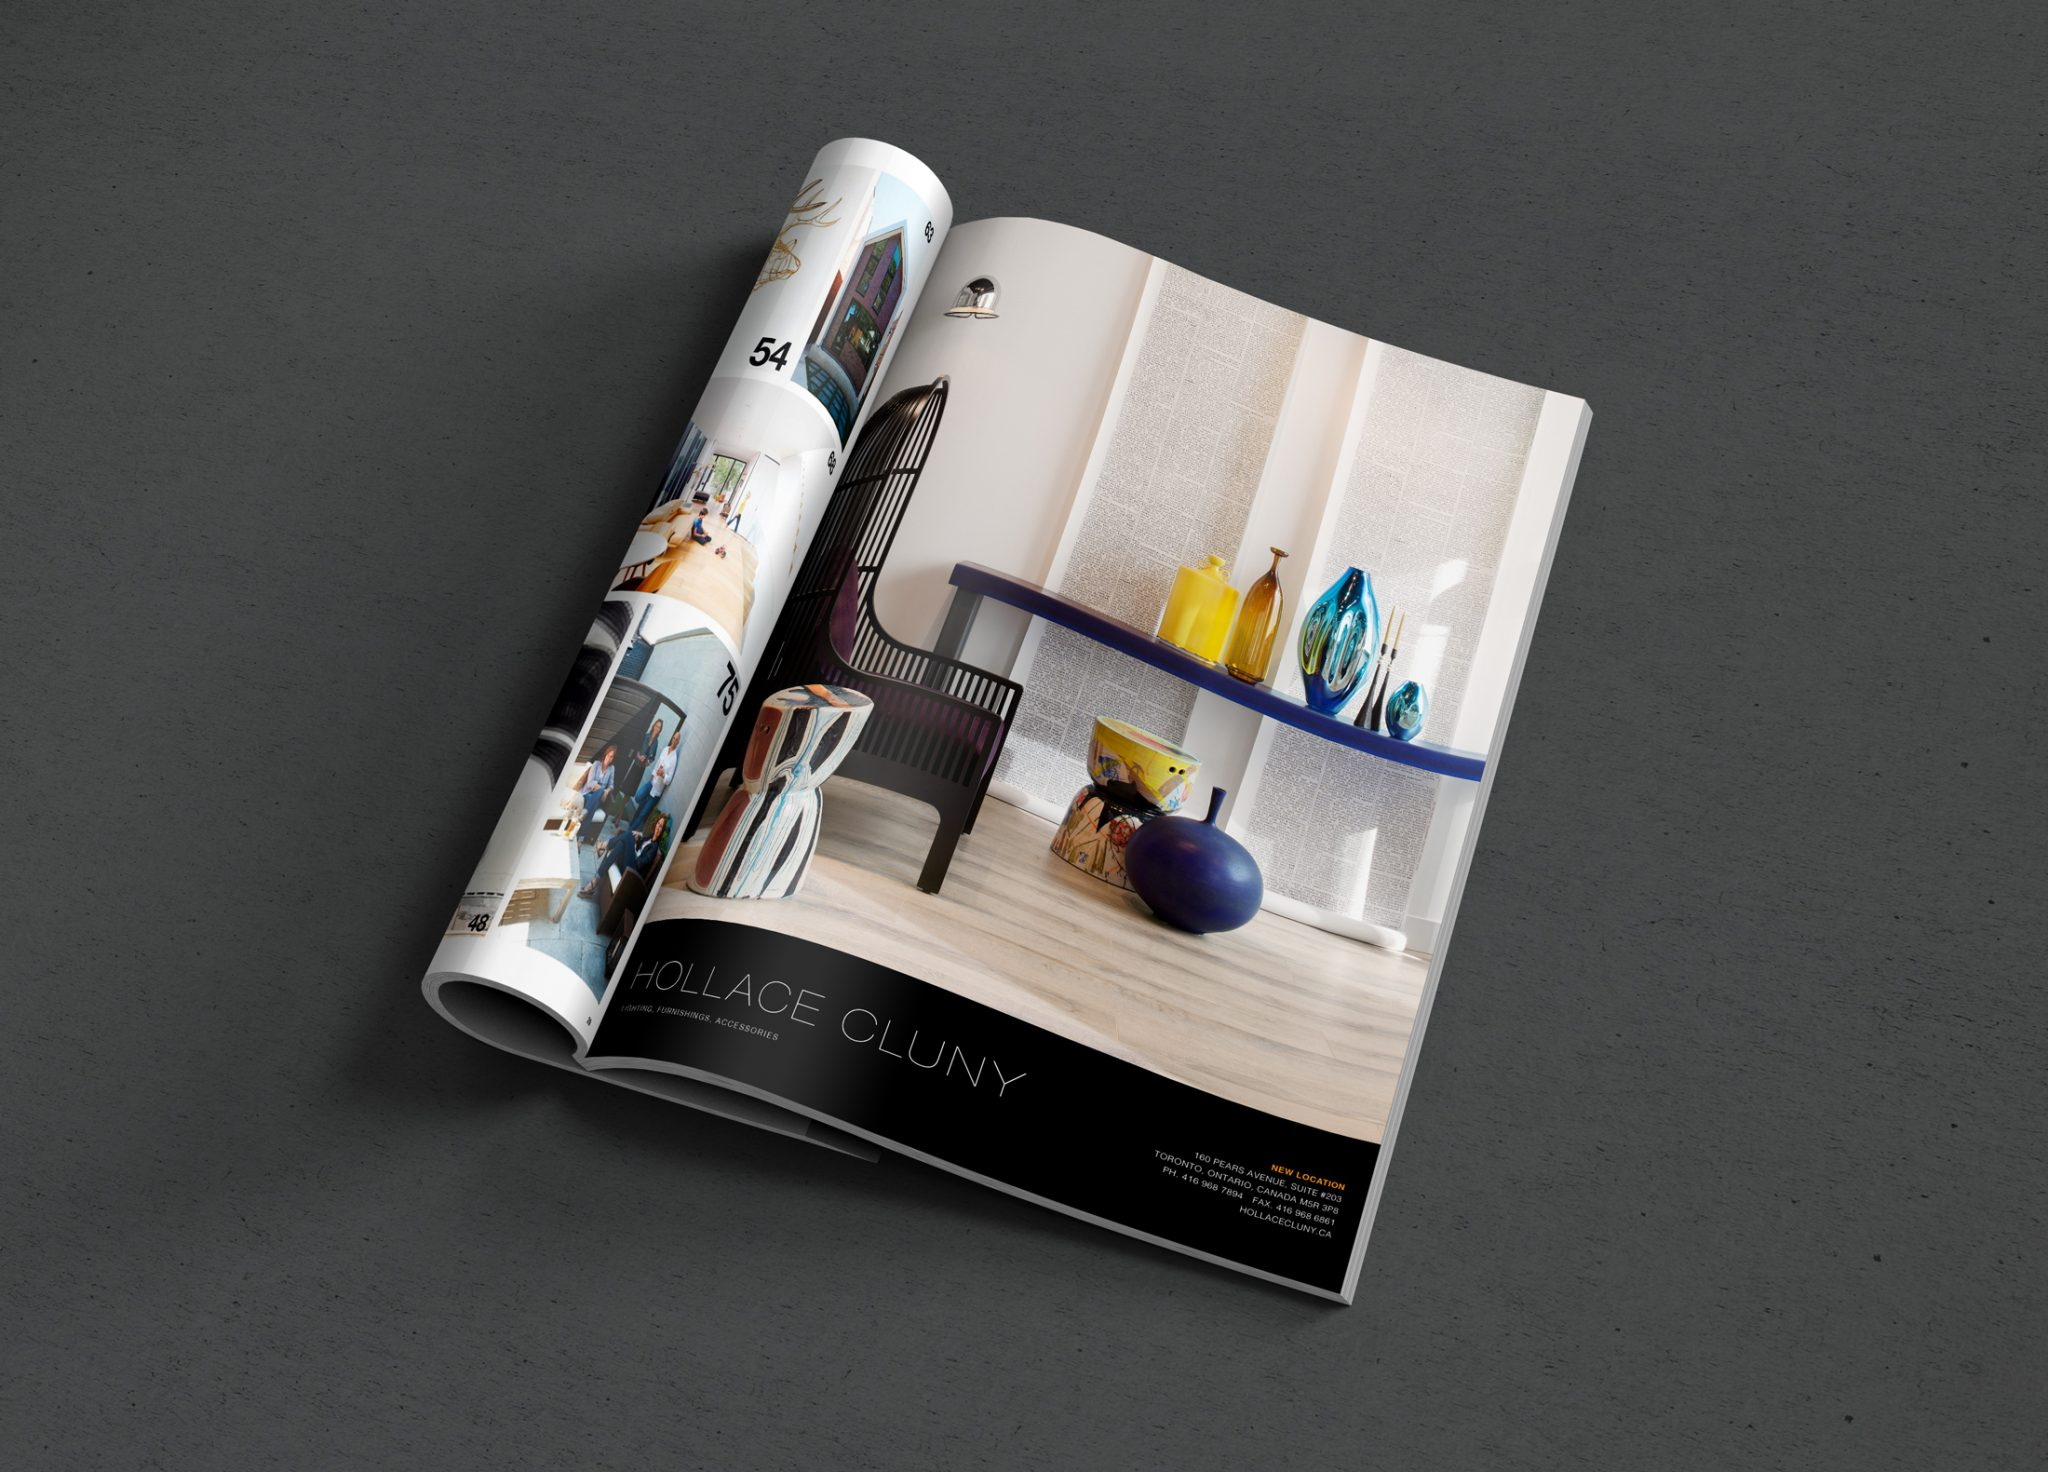 Hollace Cluny ad in DesignLines Magazine